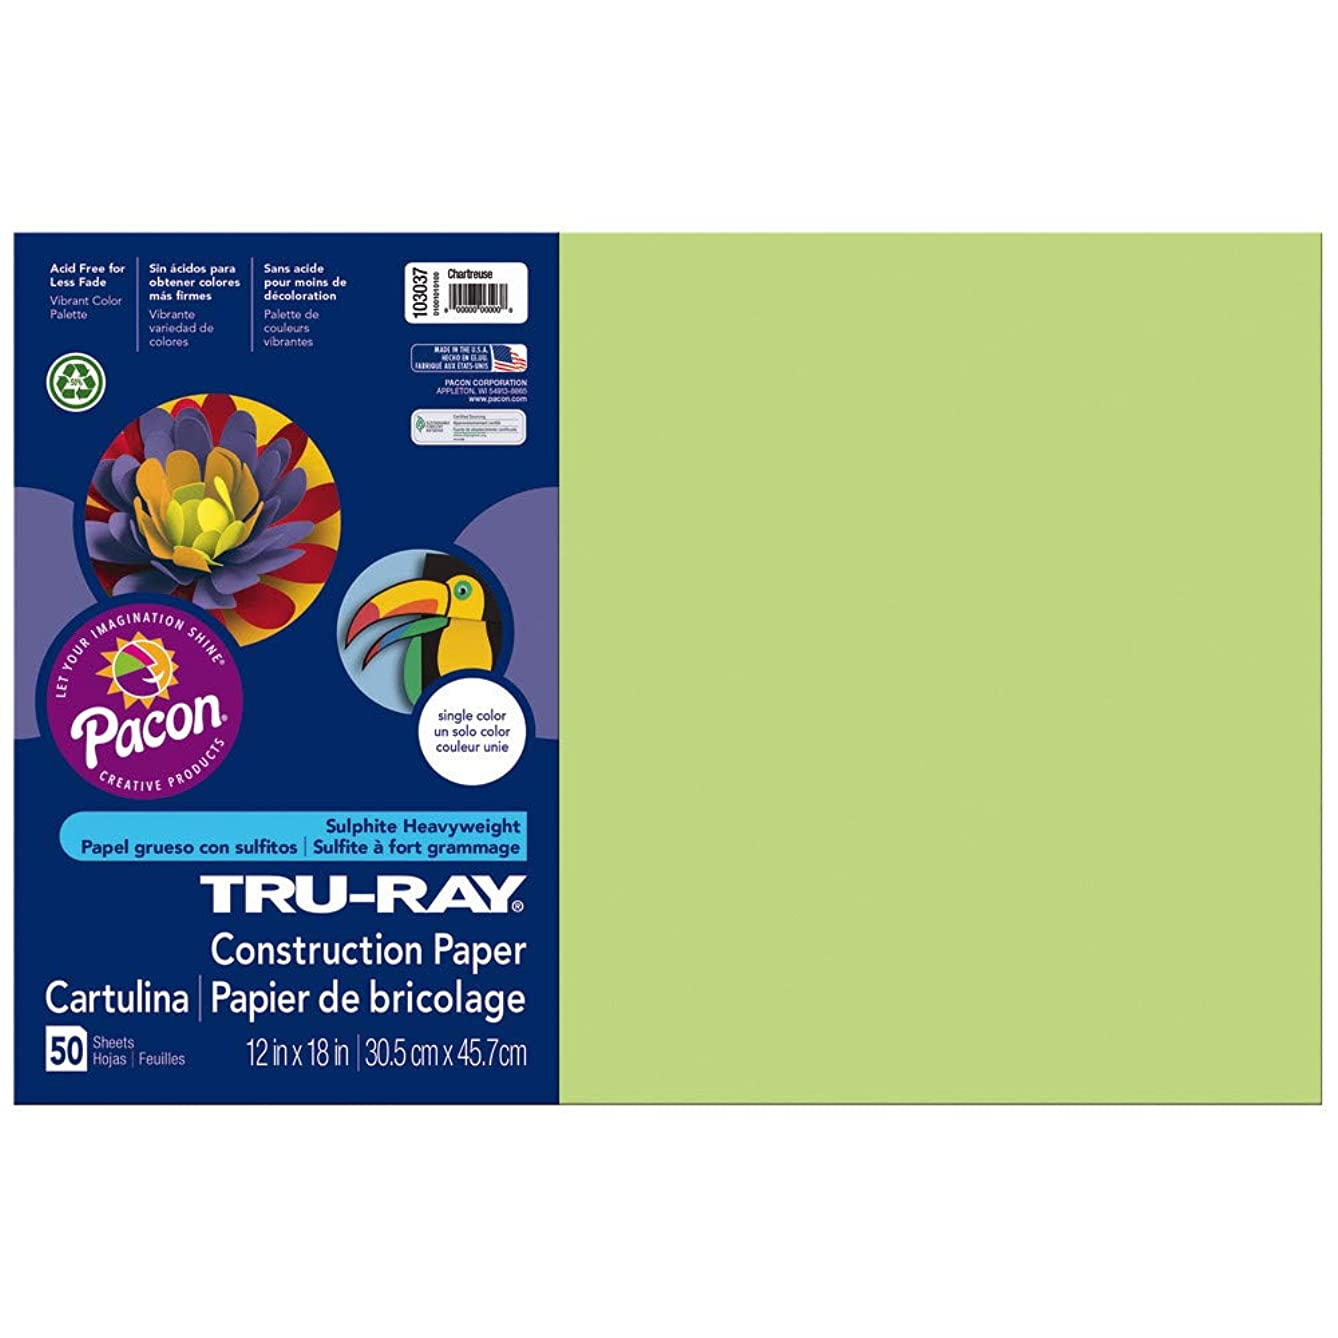 Pacon 103037 Tru-Ray Construction Paper, 12in. x 18in., Chartreuse